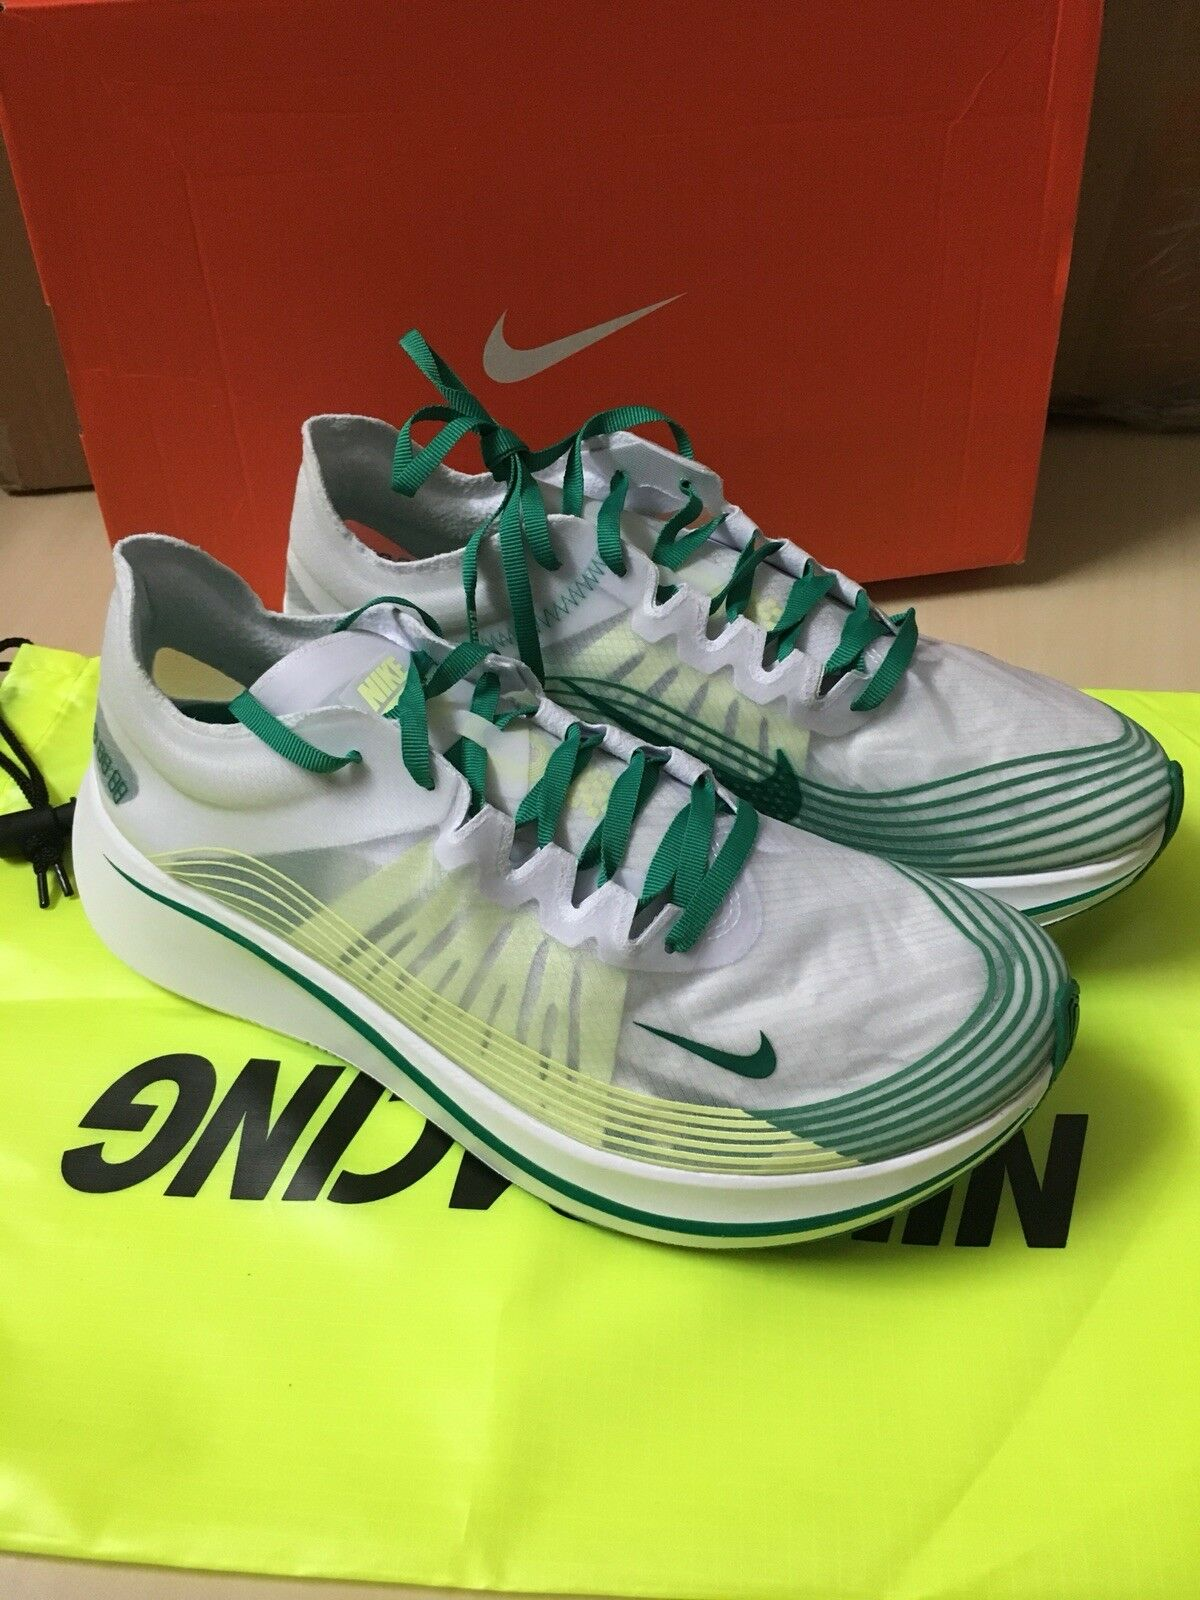 164368c9d9f3 ... New Men s Fly Nike Zoom Fly Men s SP US 12 Hong Kong White Lucid . ...